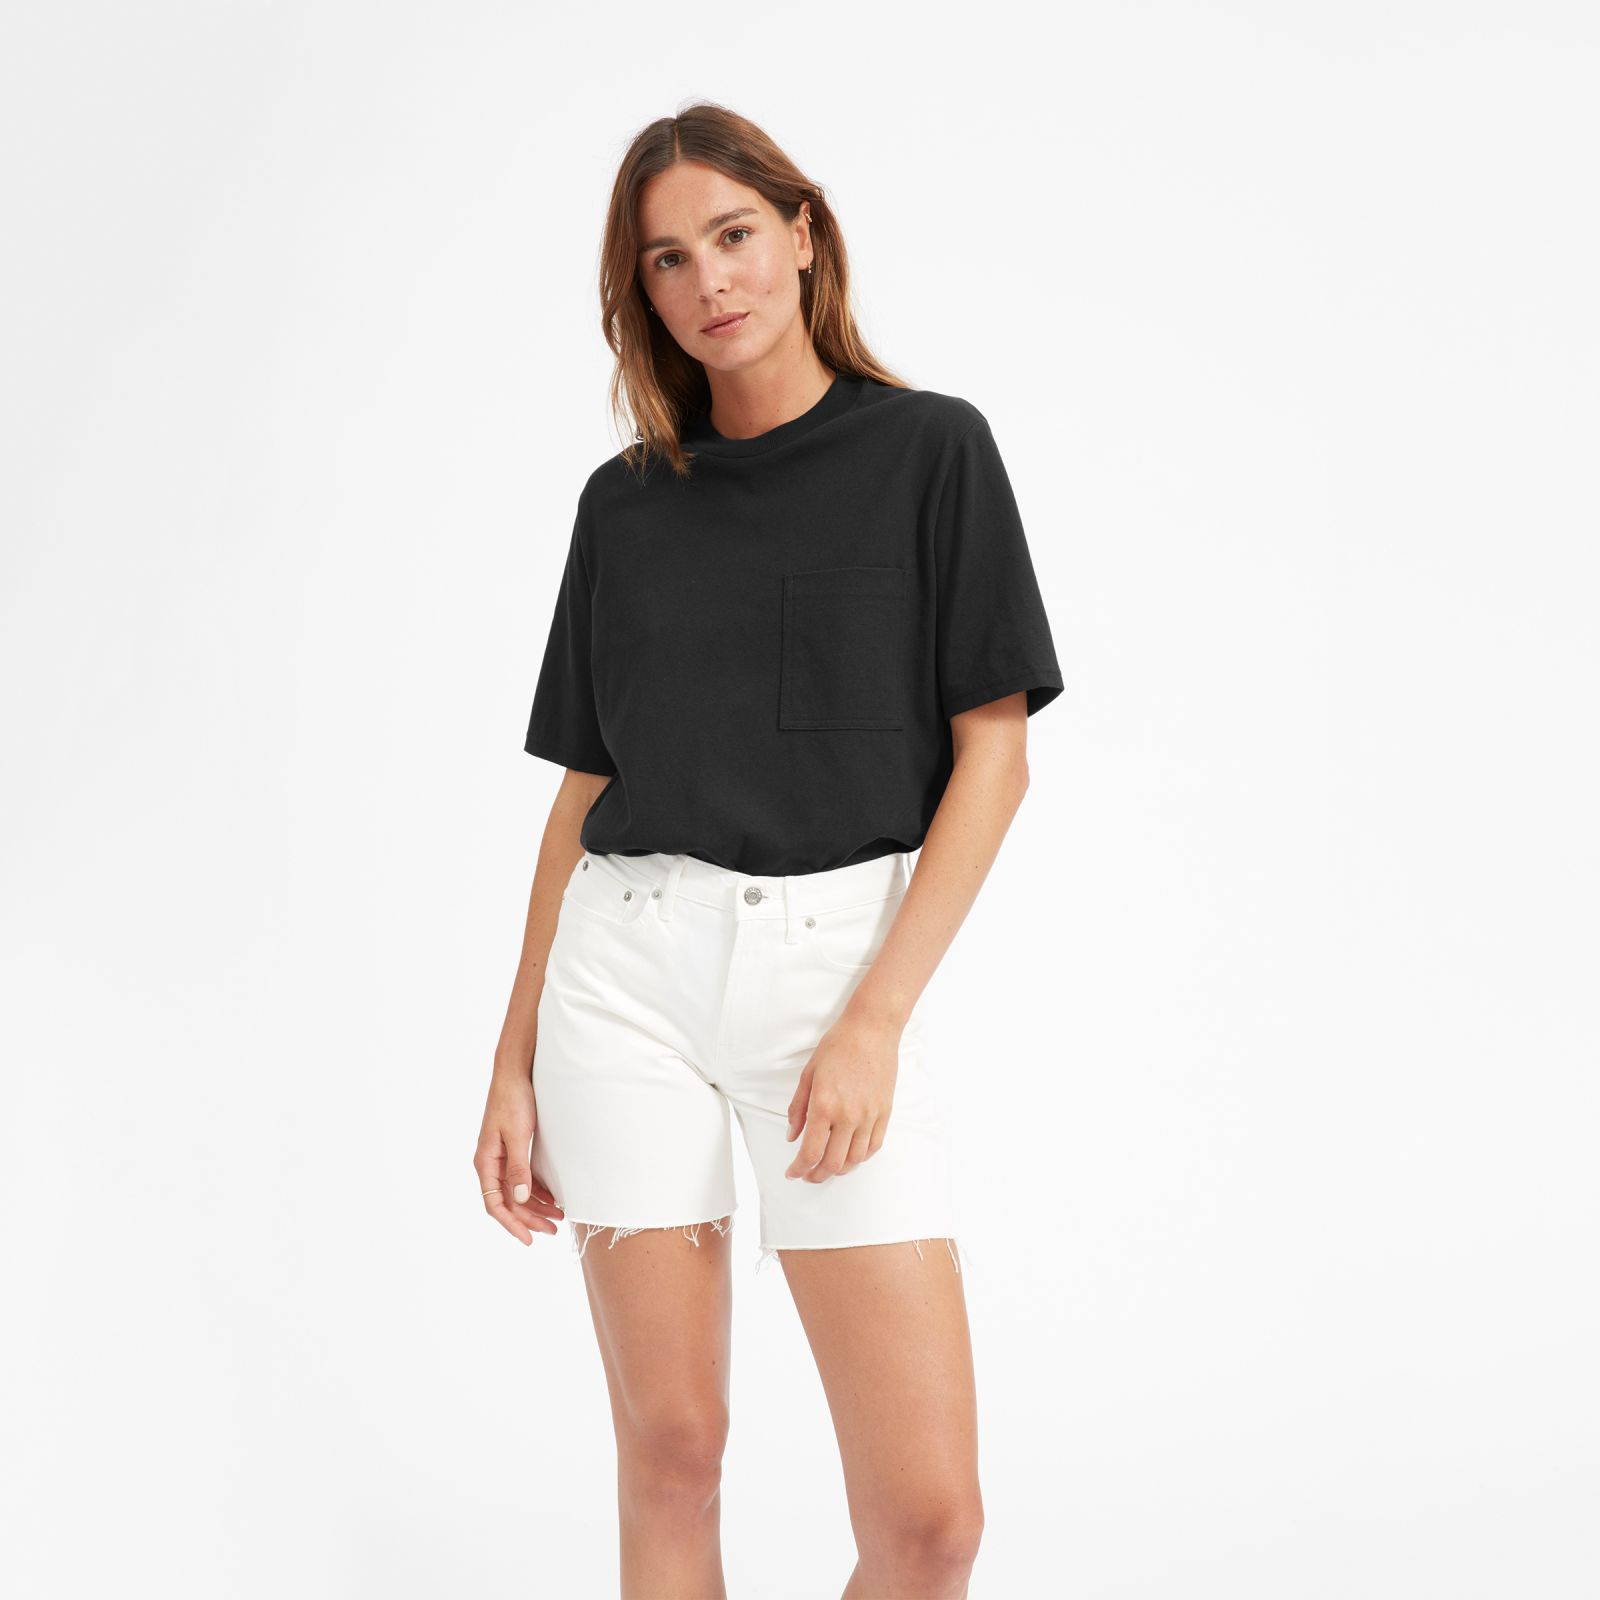 women's oversized pocket t-shirt by everlane in washed black, size l